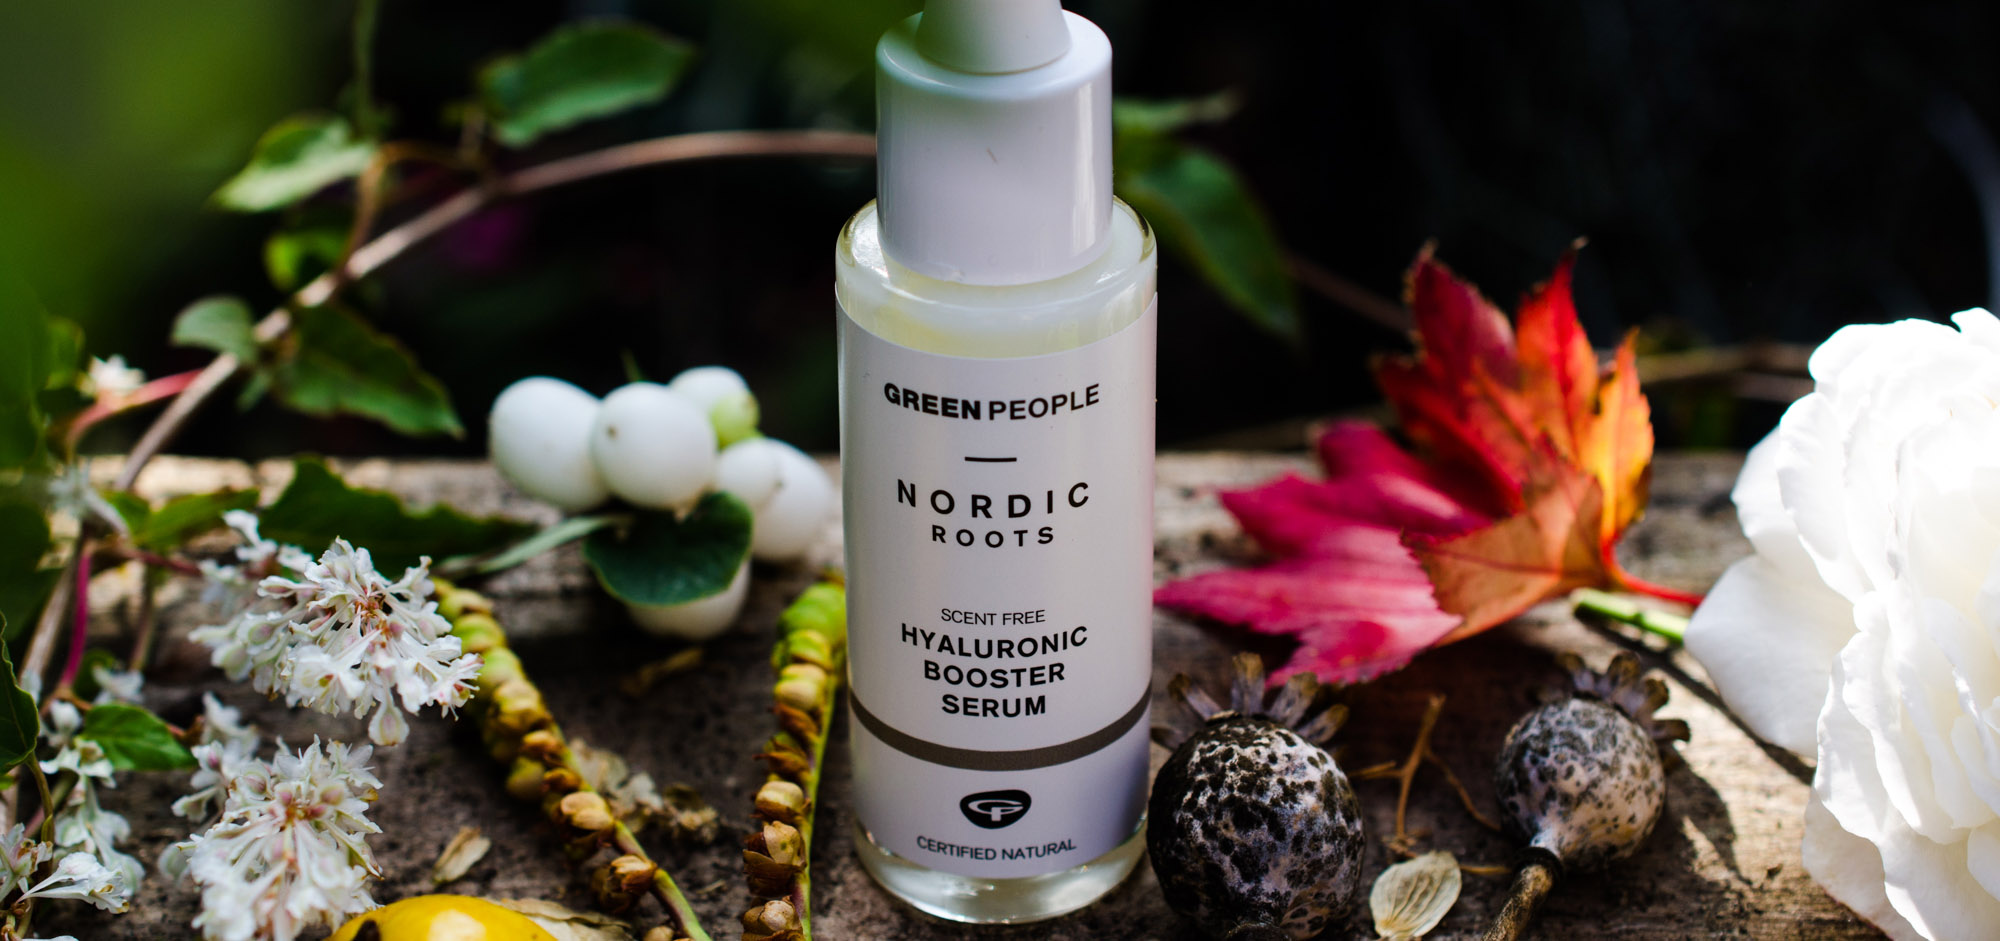 Green People Nordic Roots Hyaluronic Booster Serum